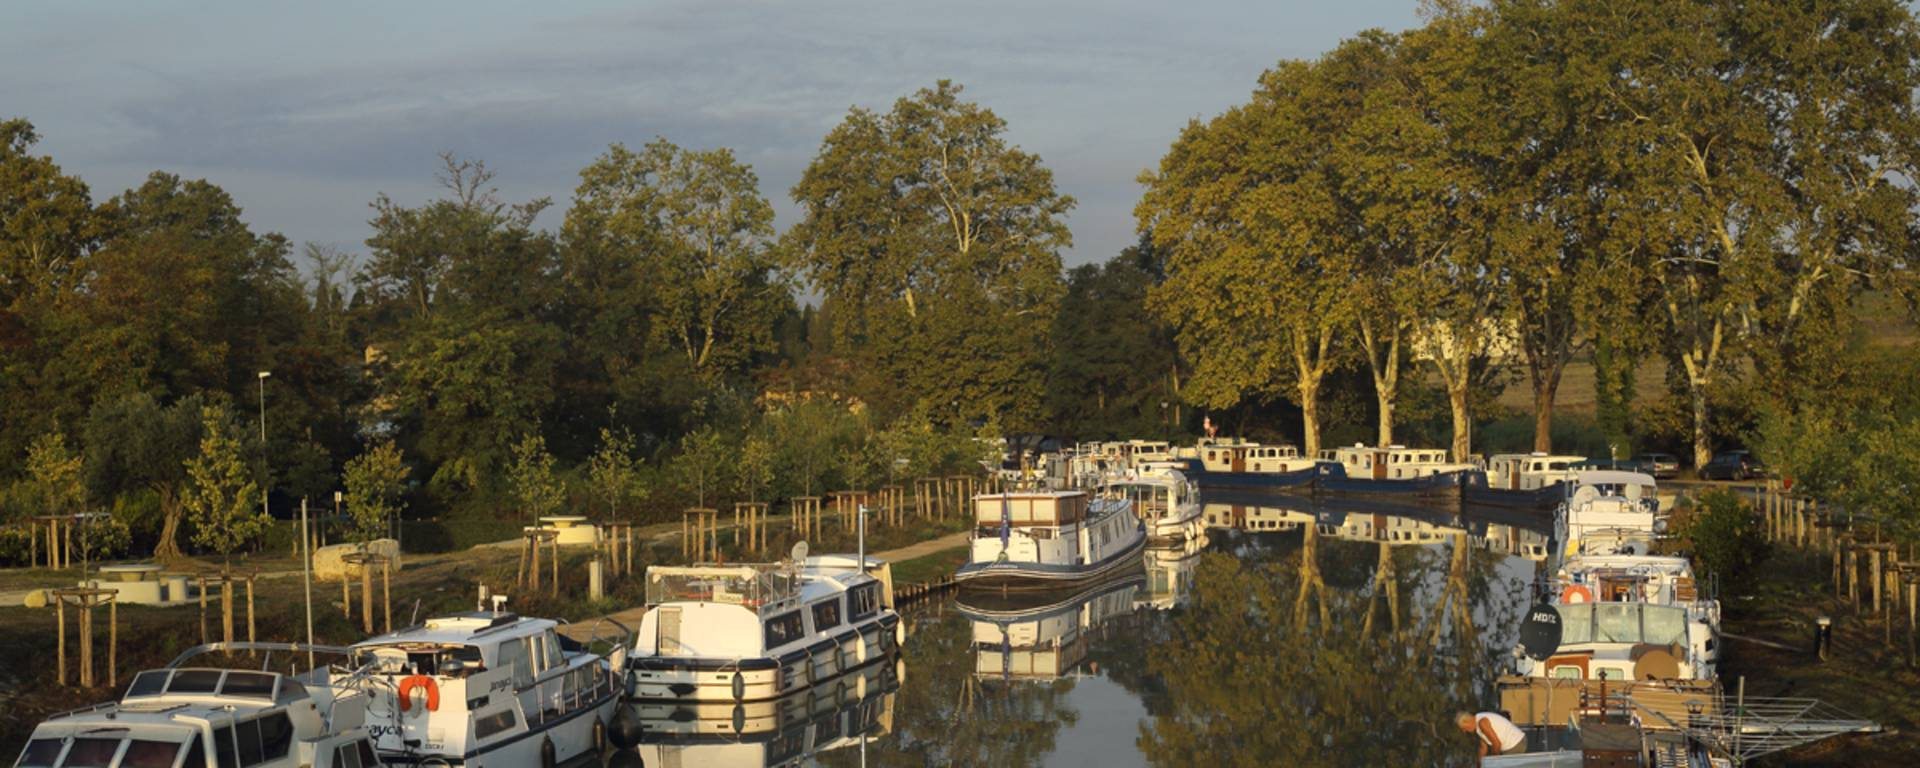 Pleasure boating on the canal ©G. Souche